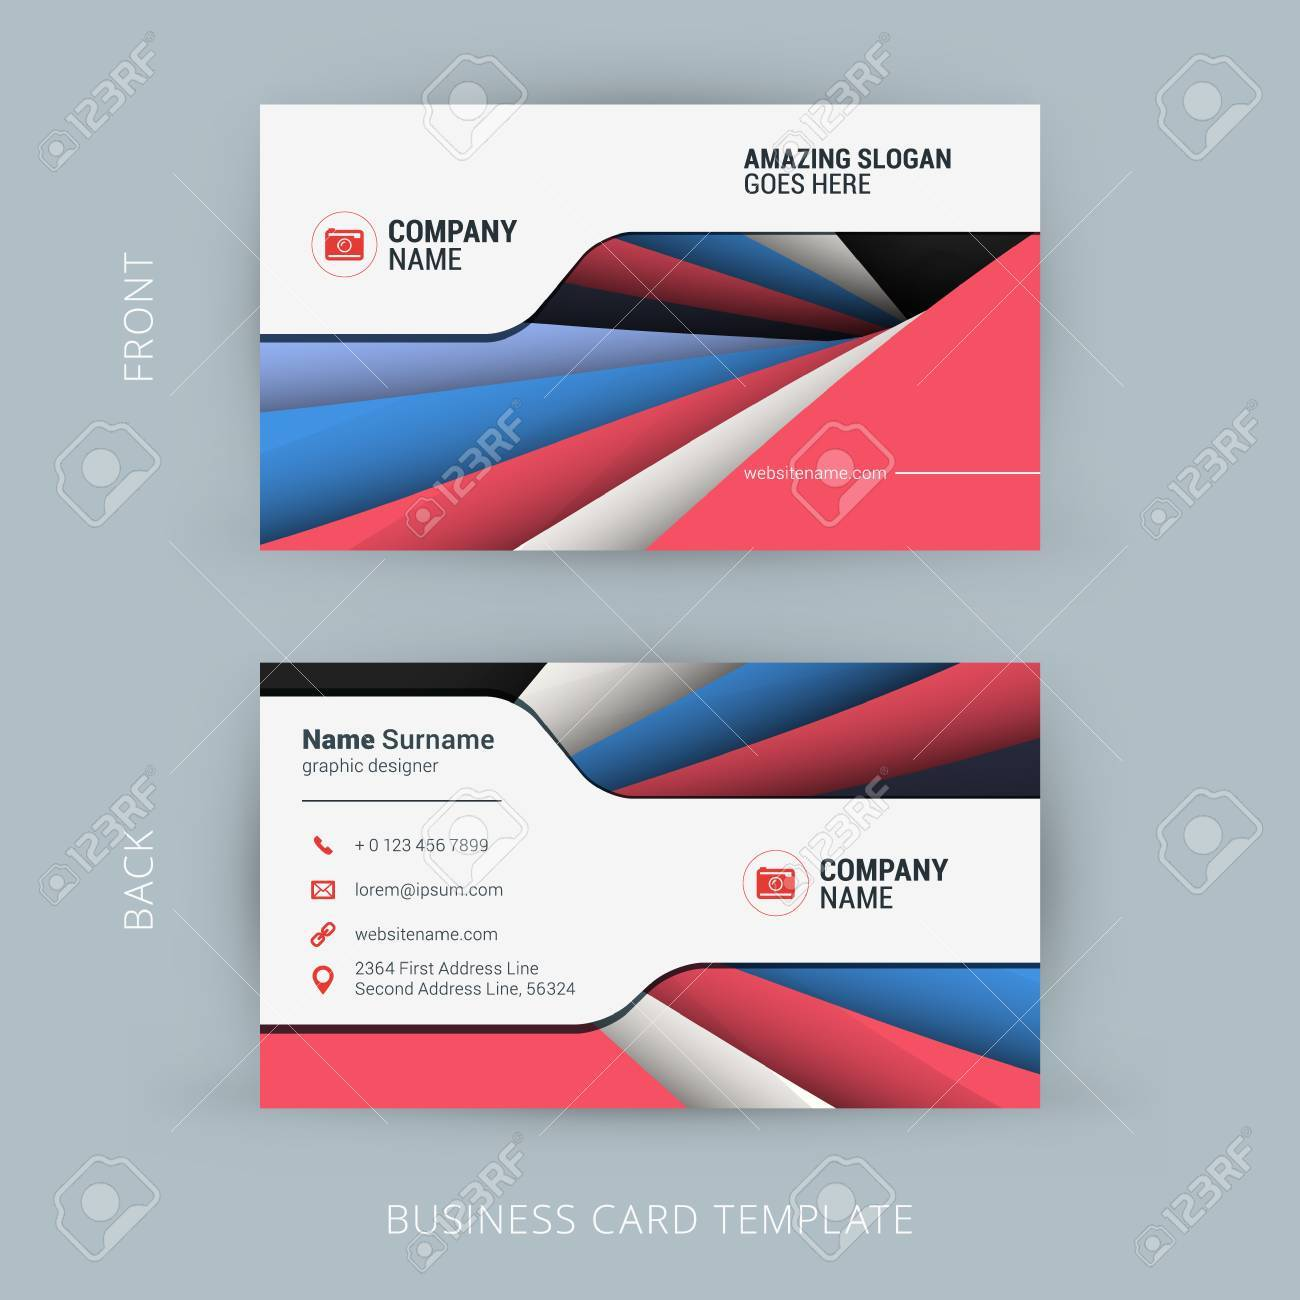 Creative and clean business card template with material design creative and clean business card template with material design abstract colorful background stock vector 44989276 reheart Gallery